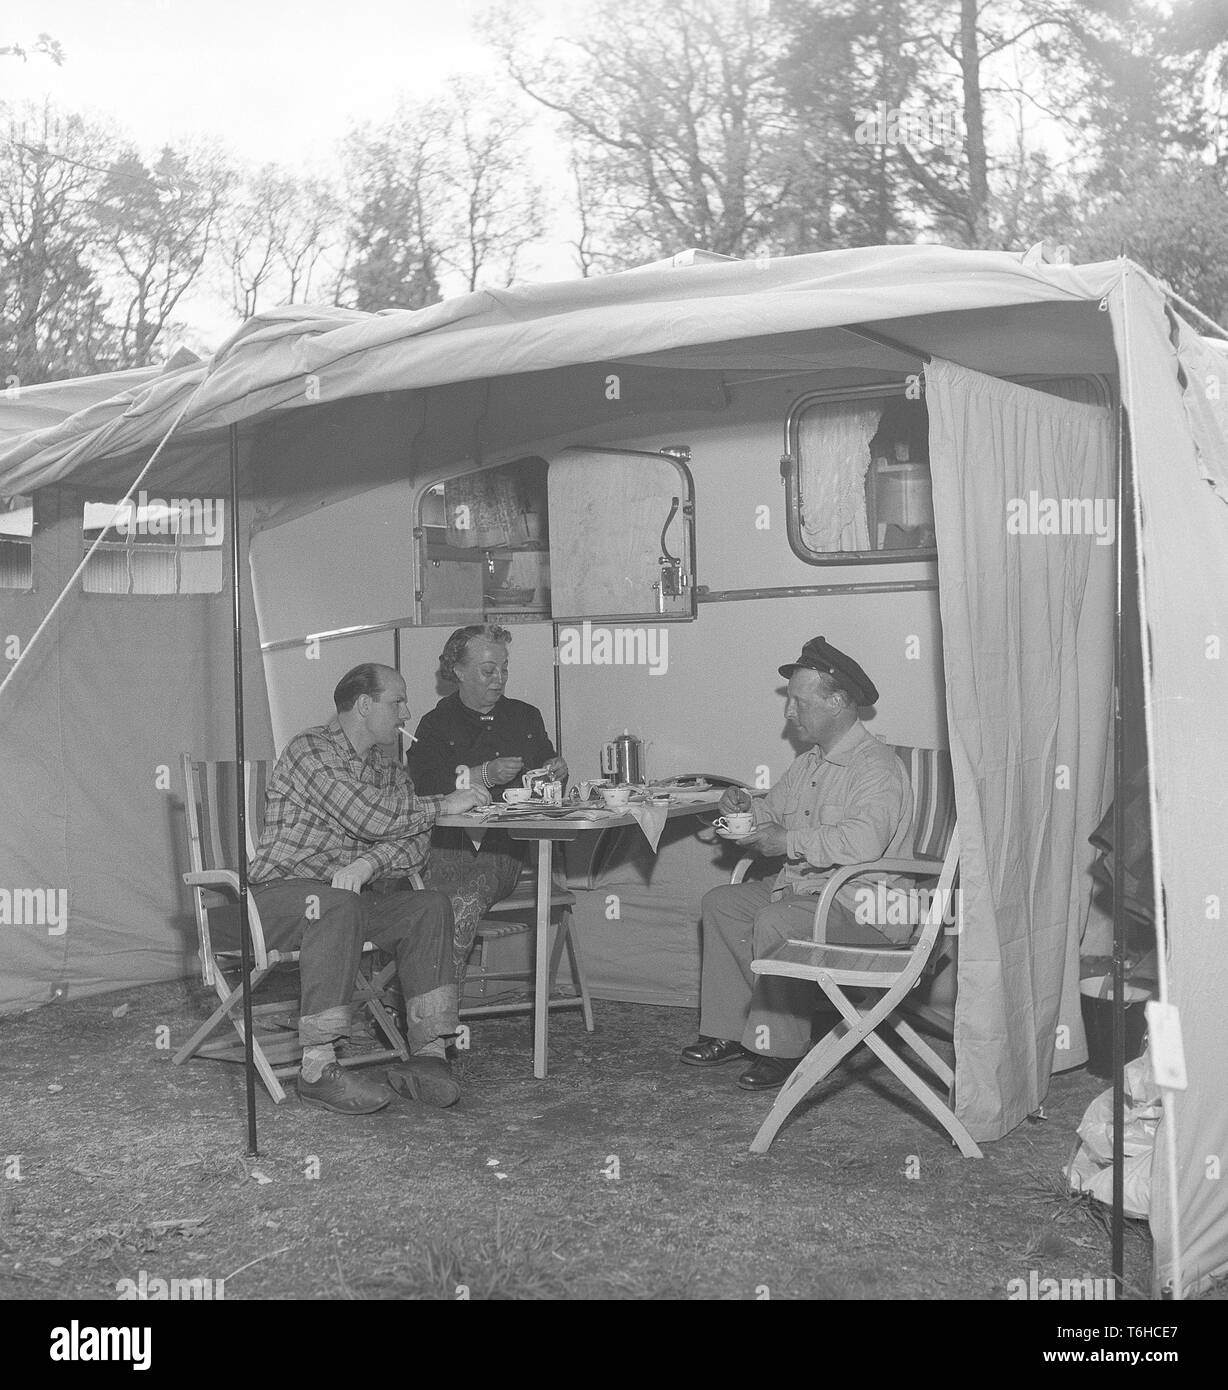 Camping 1950s Stock Photos & Camping 1950s Stock Images - Alamy